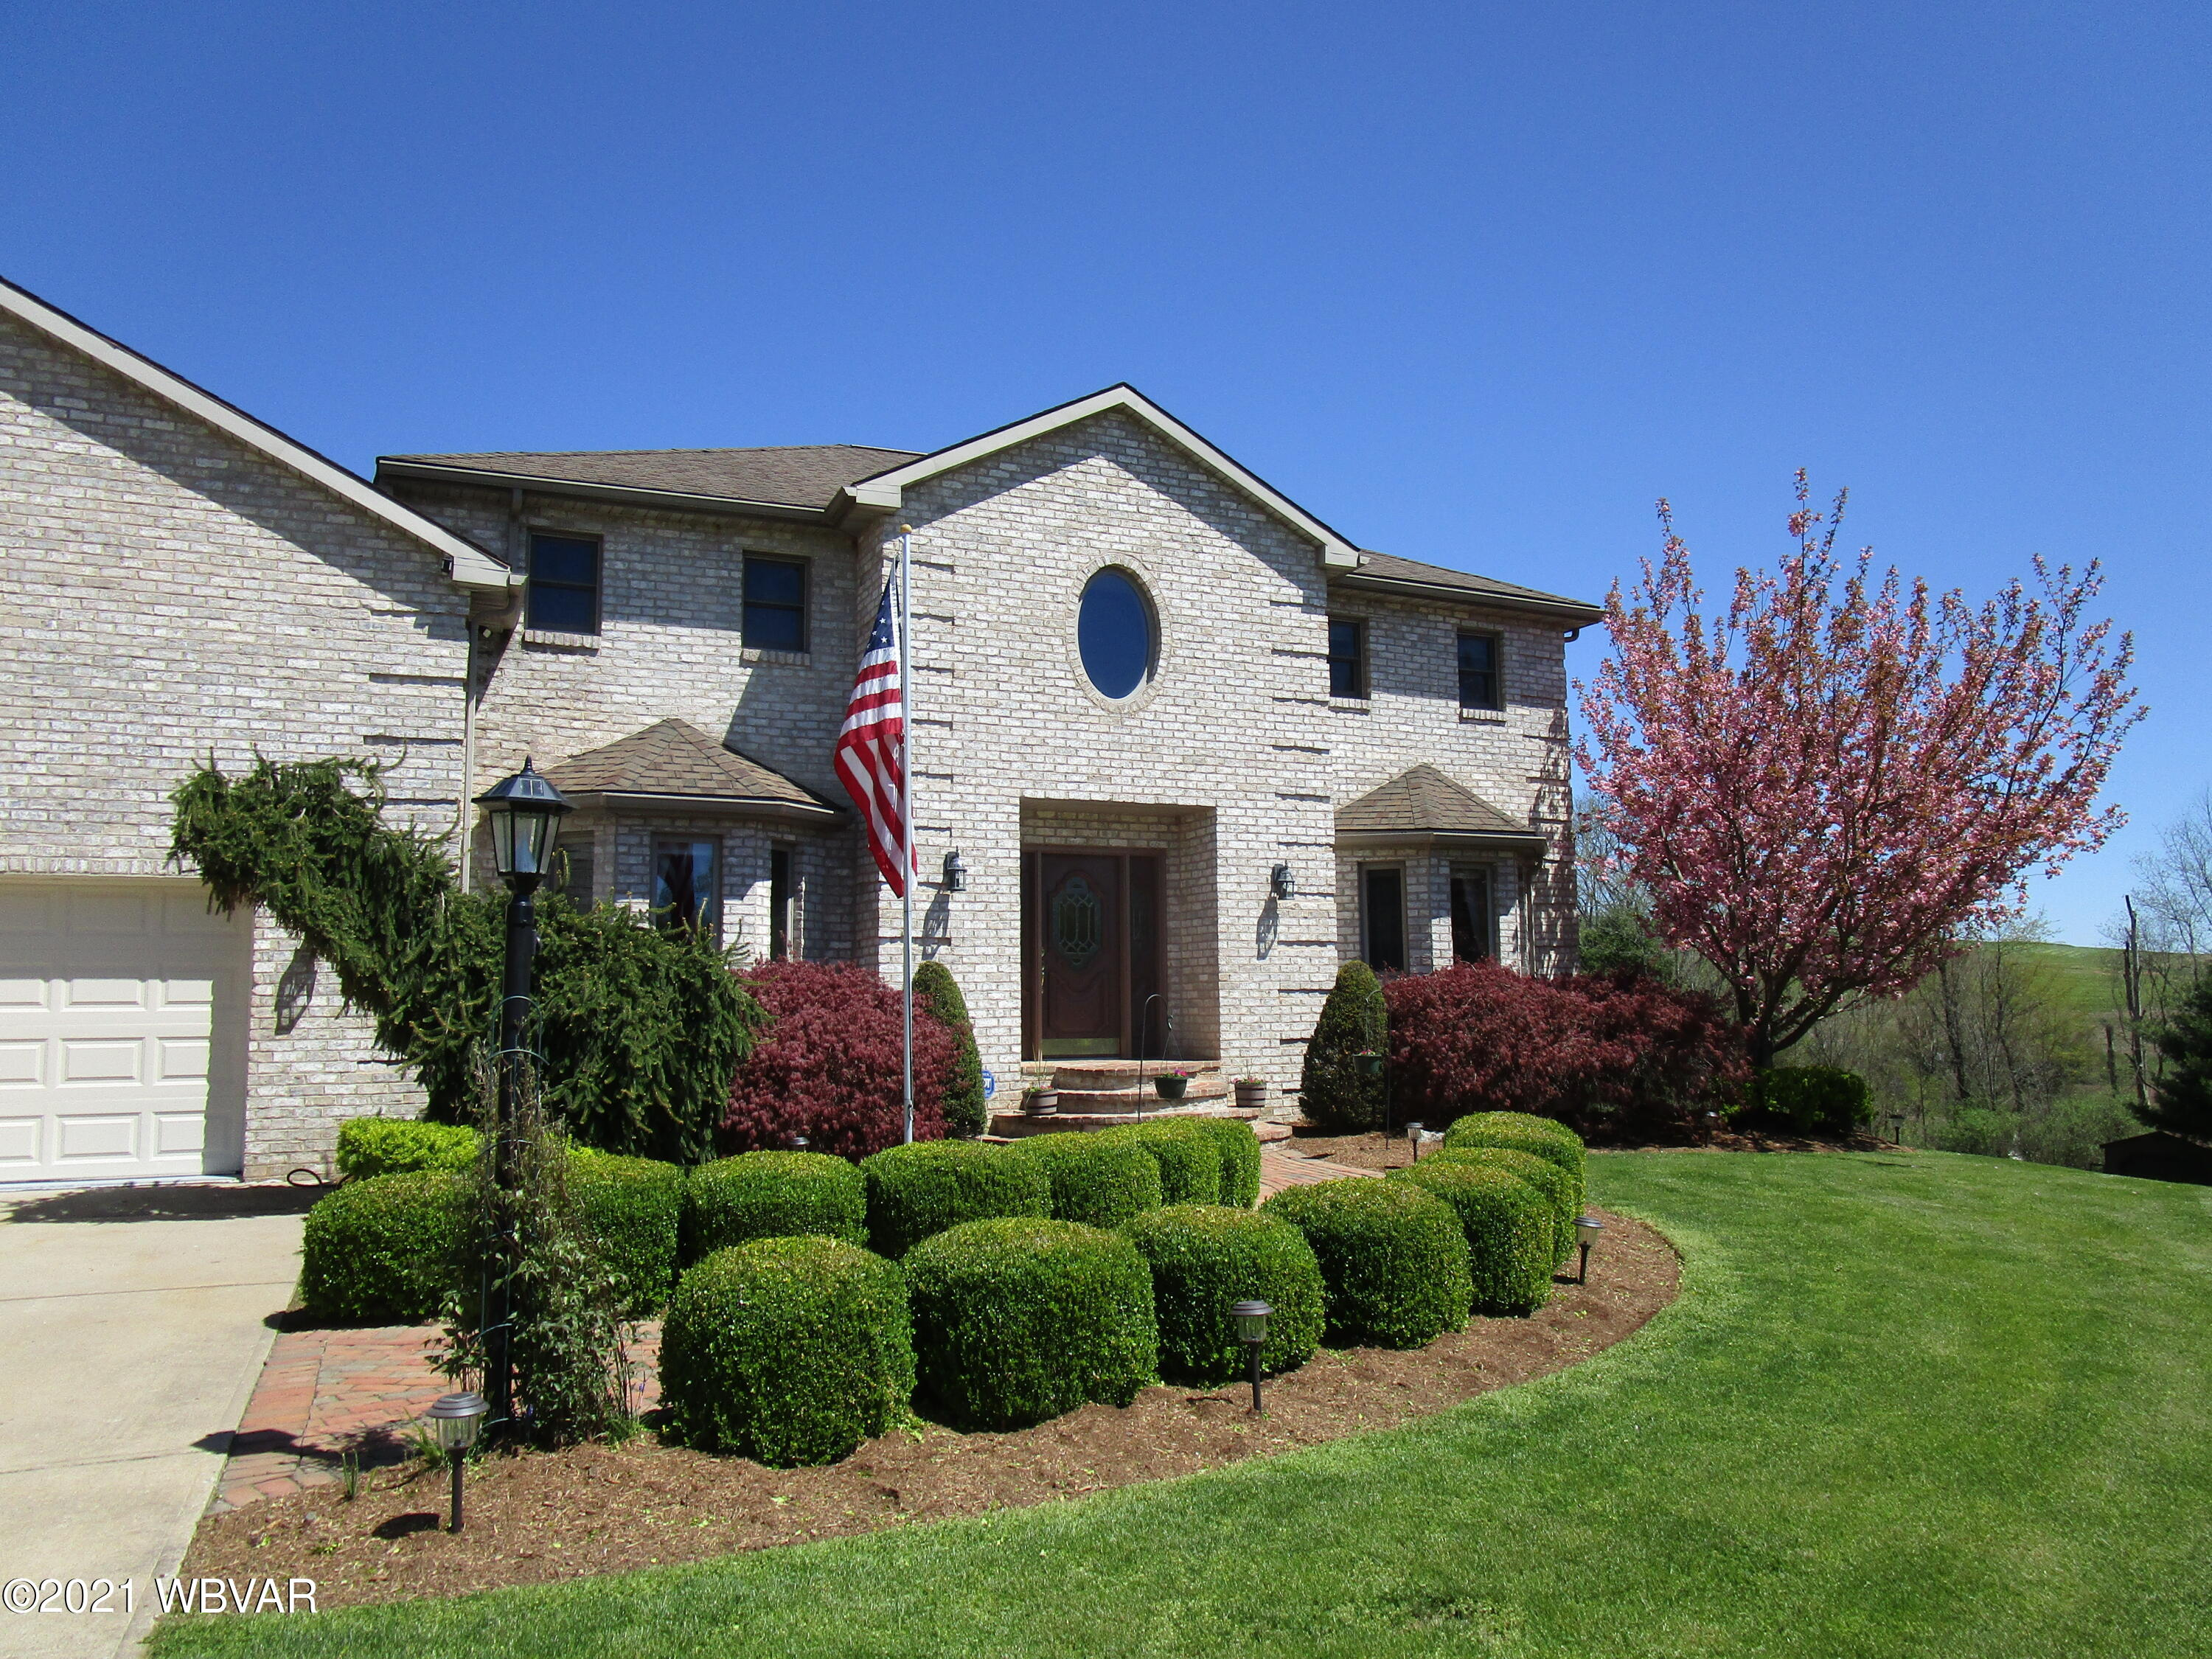 128 VIEWPOINT ROAD, Cogan Station, PA 17728, 4 Bedrooms Bedrooms, ,3.5 BathroomsBathrooms,Residential,For sale,VIEWPOINT,WB-92446